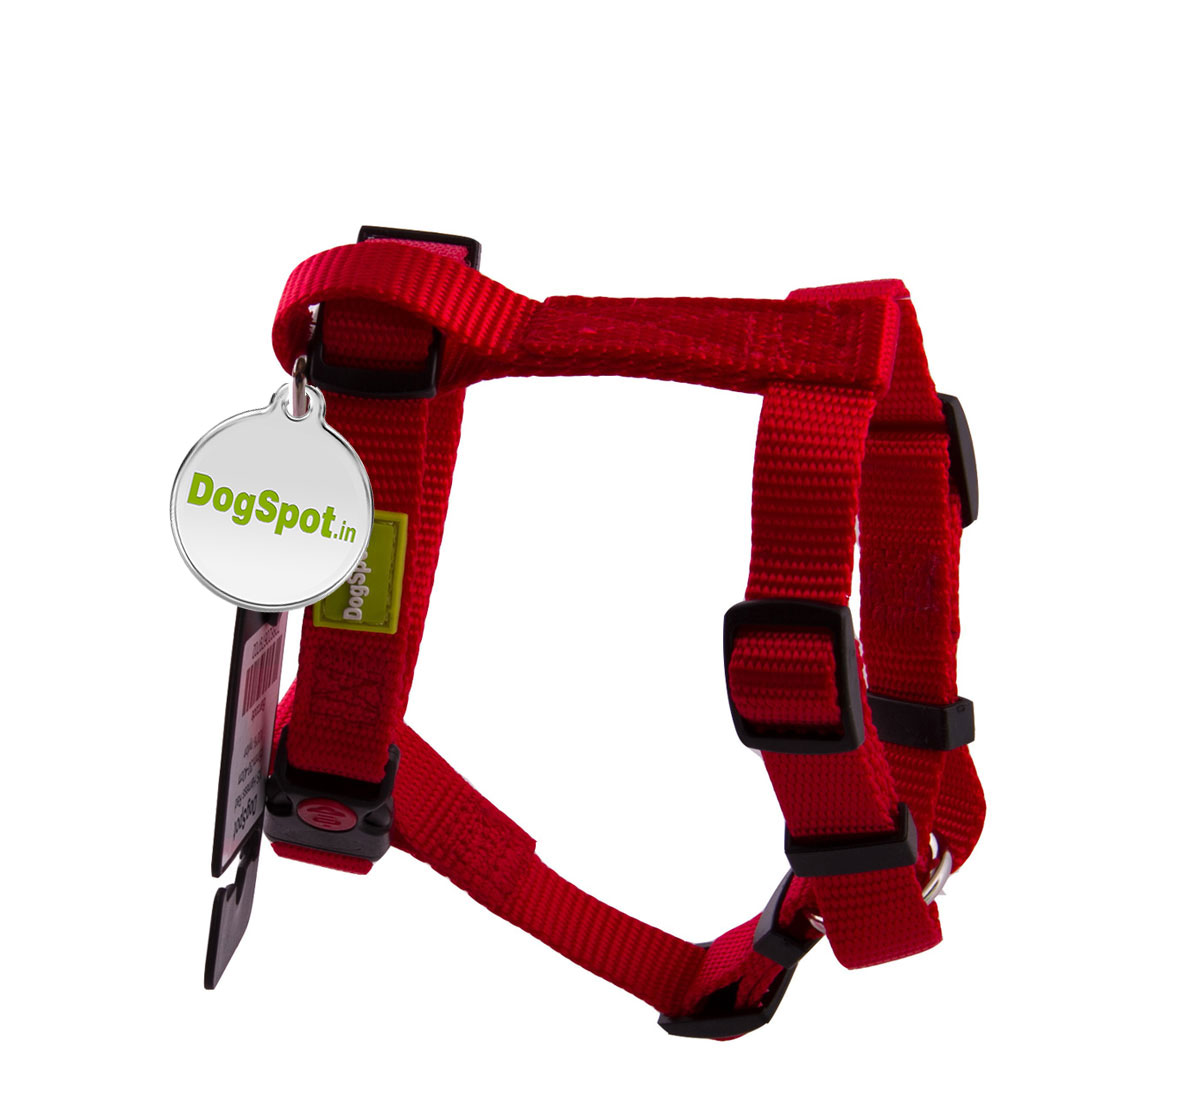 DogSpot Premium Harness Red - Small With Wag Tag